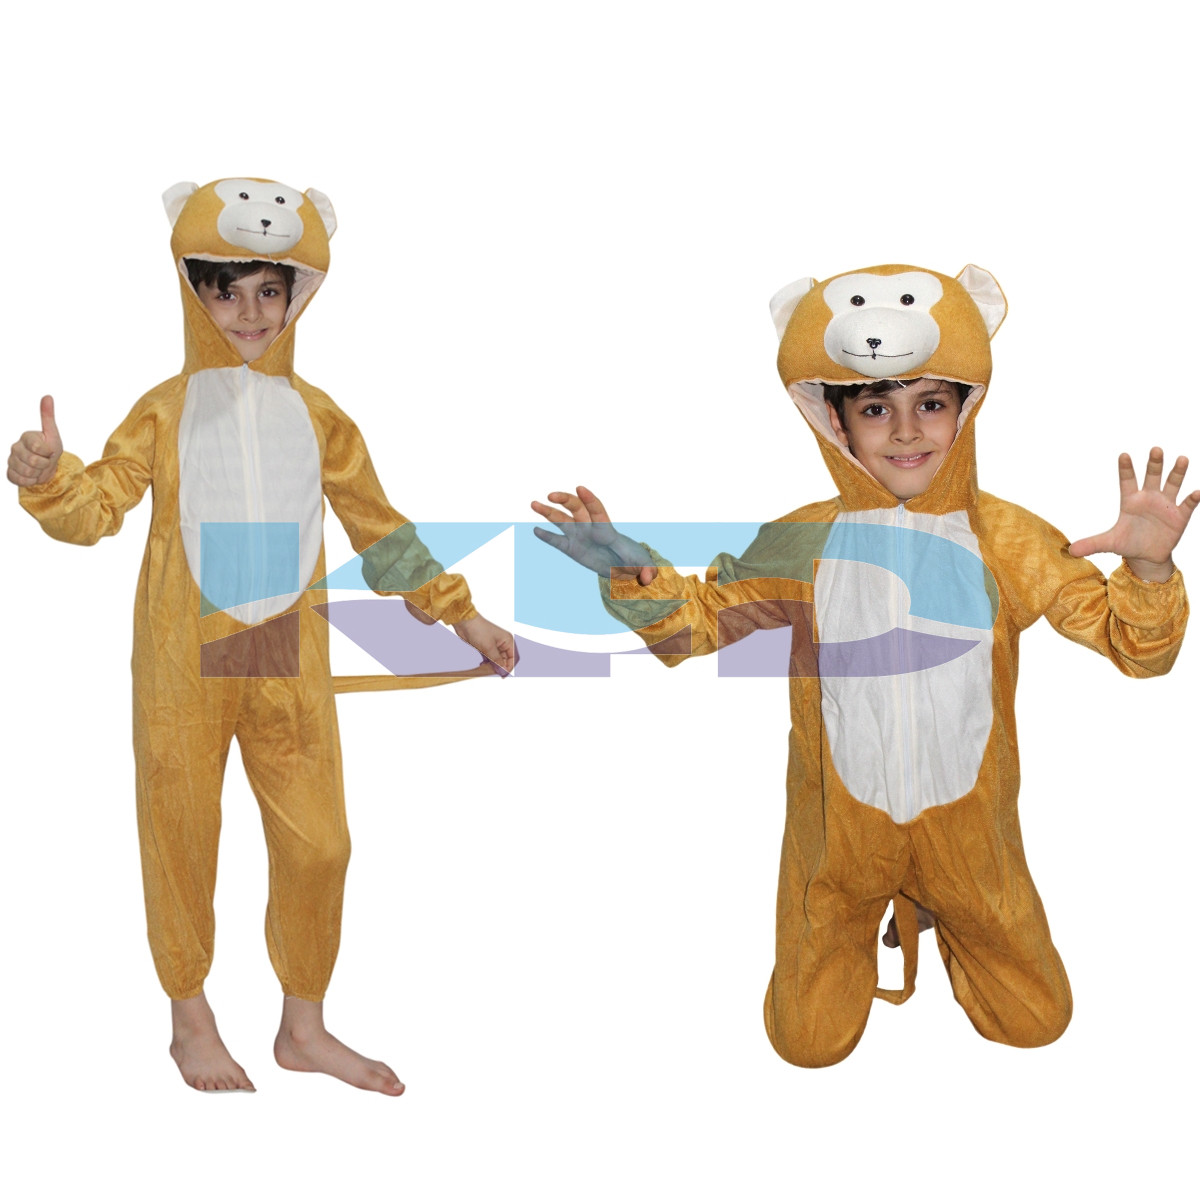 Monkey fancy dress for kids,Wild Animal Costume for Annual function/Theme Party/Competition/Stage Shows/Birthday Party Dress